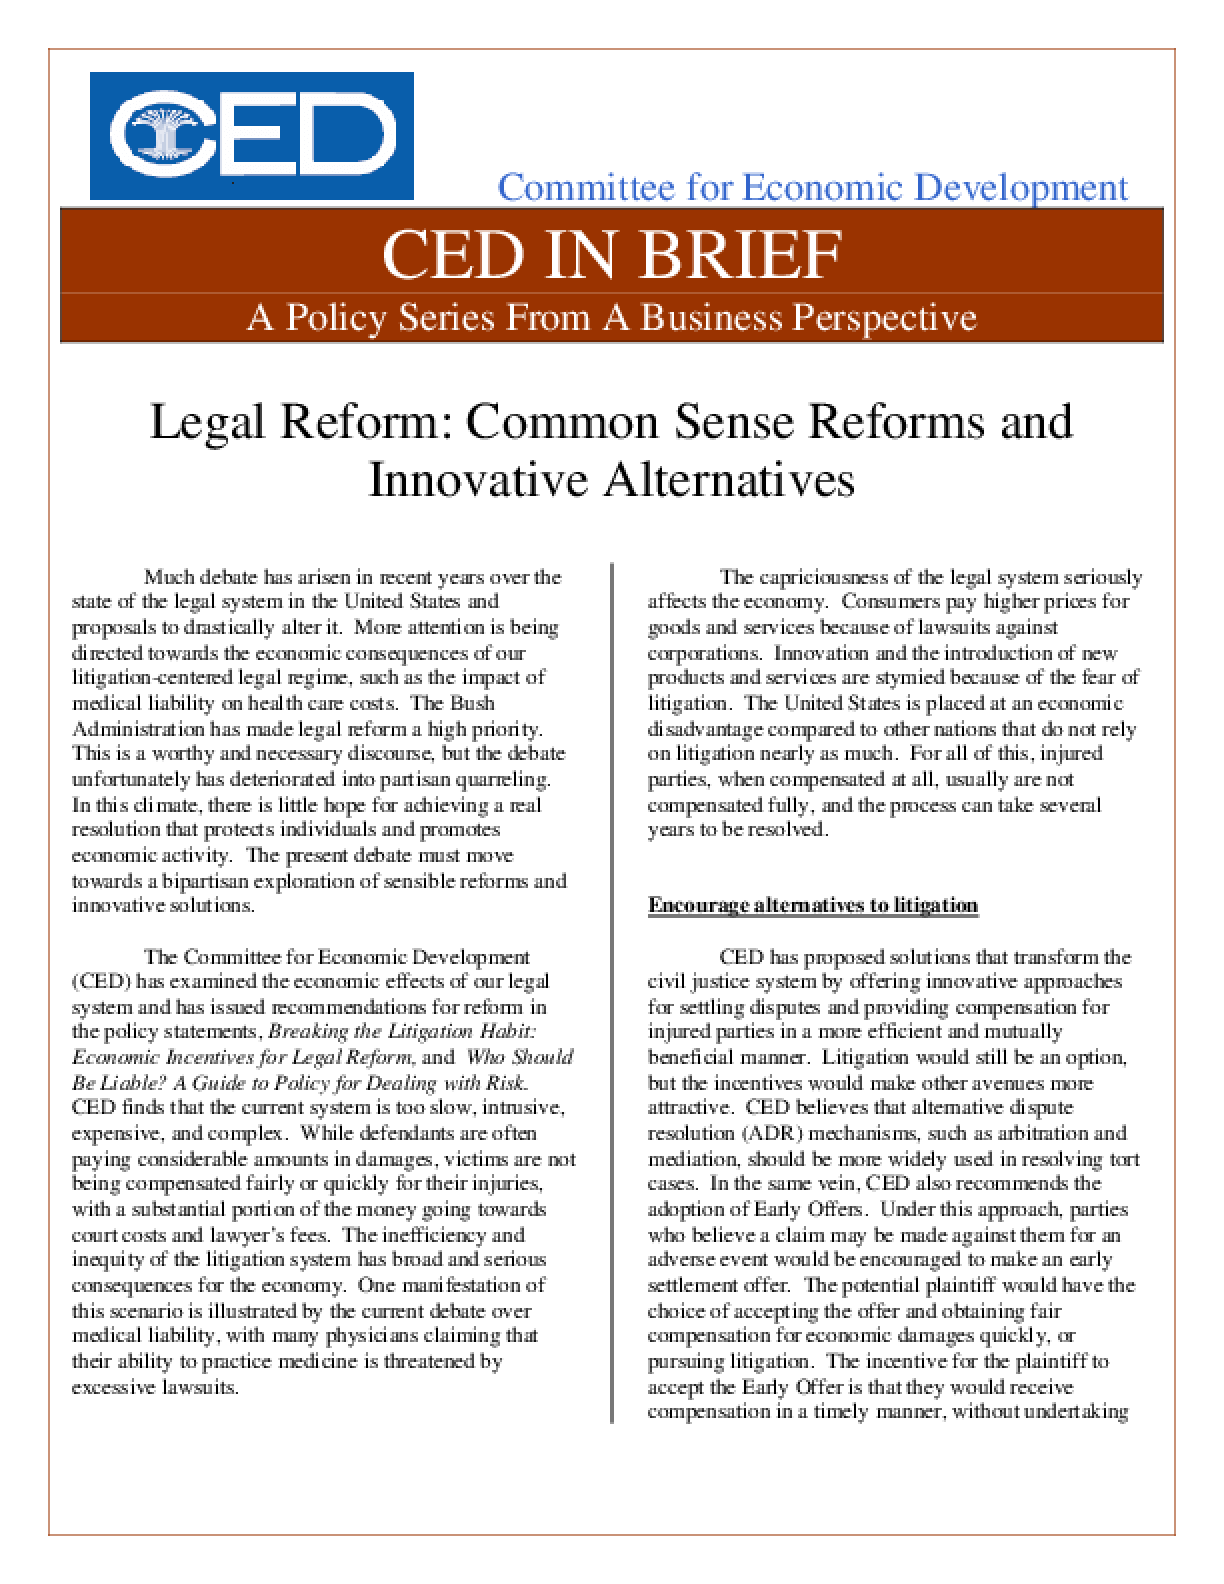 CED in Brief: Legal Reform: Common Sense Reforms and Innovative Alternatives